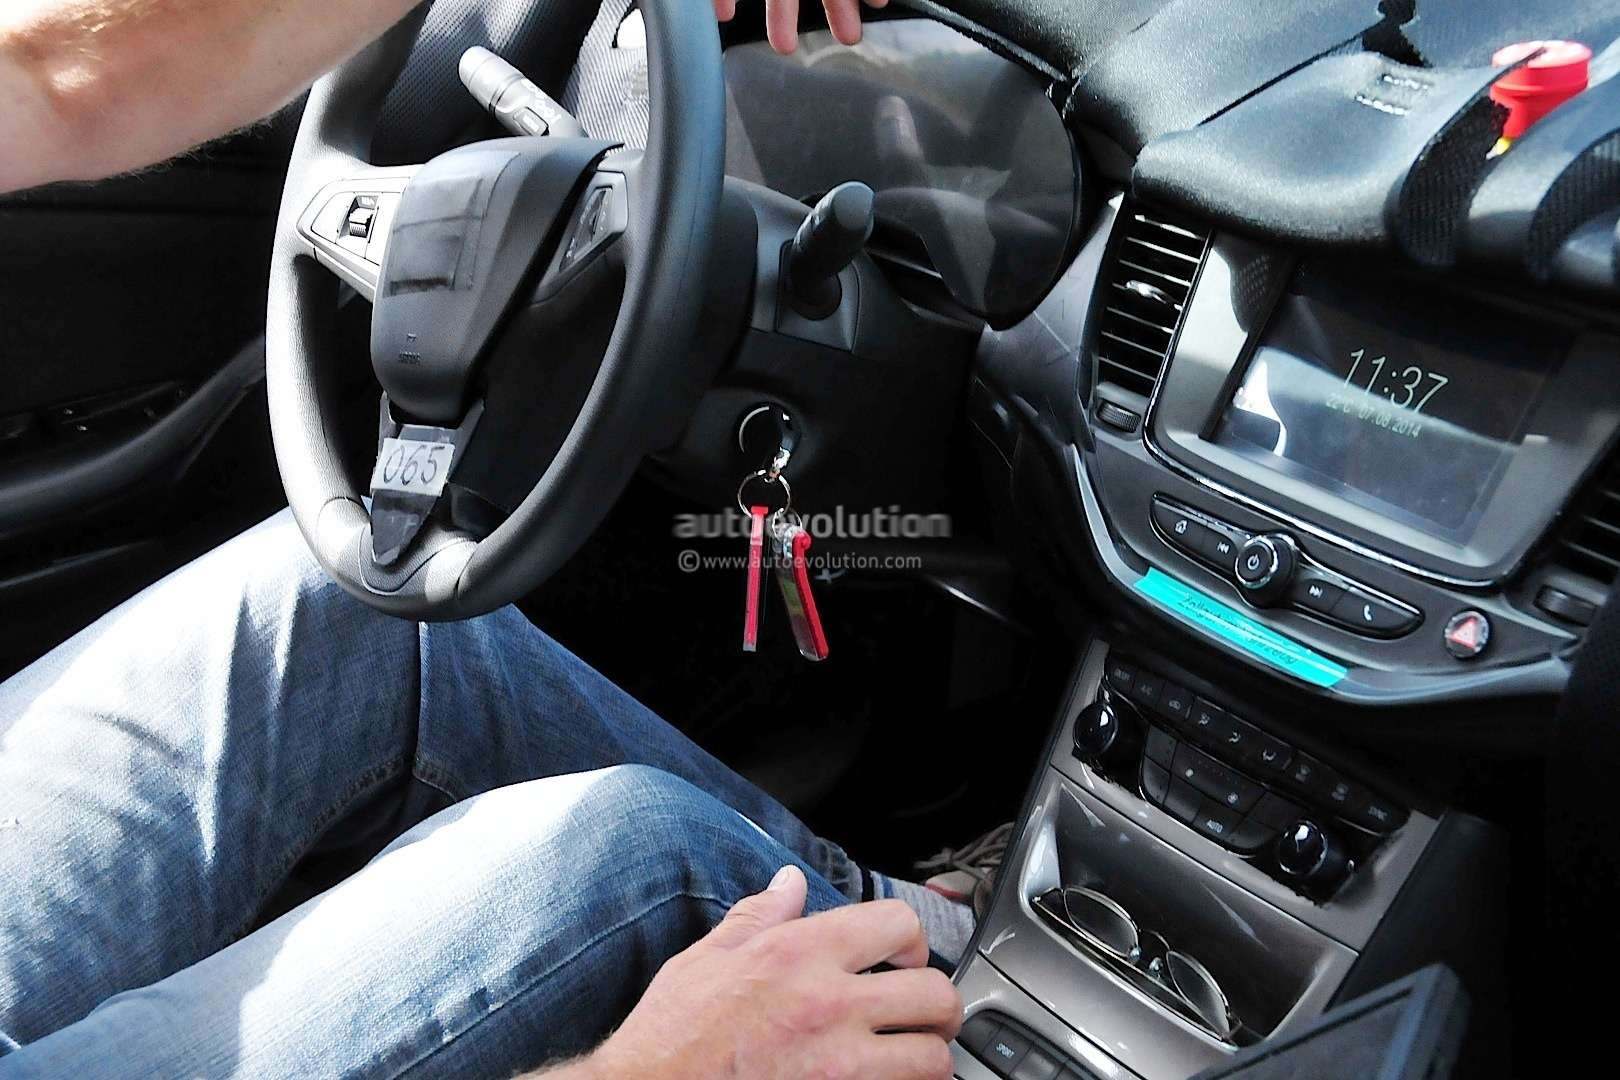 20150330_20150323_20150120_20140818_new_opel_astra_dashboard_revealed_in_latest_spyshots_5